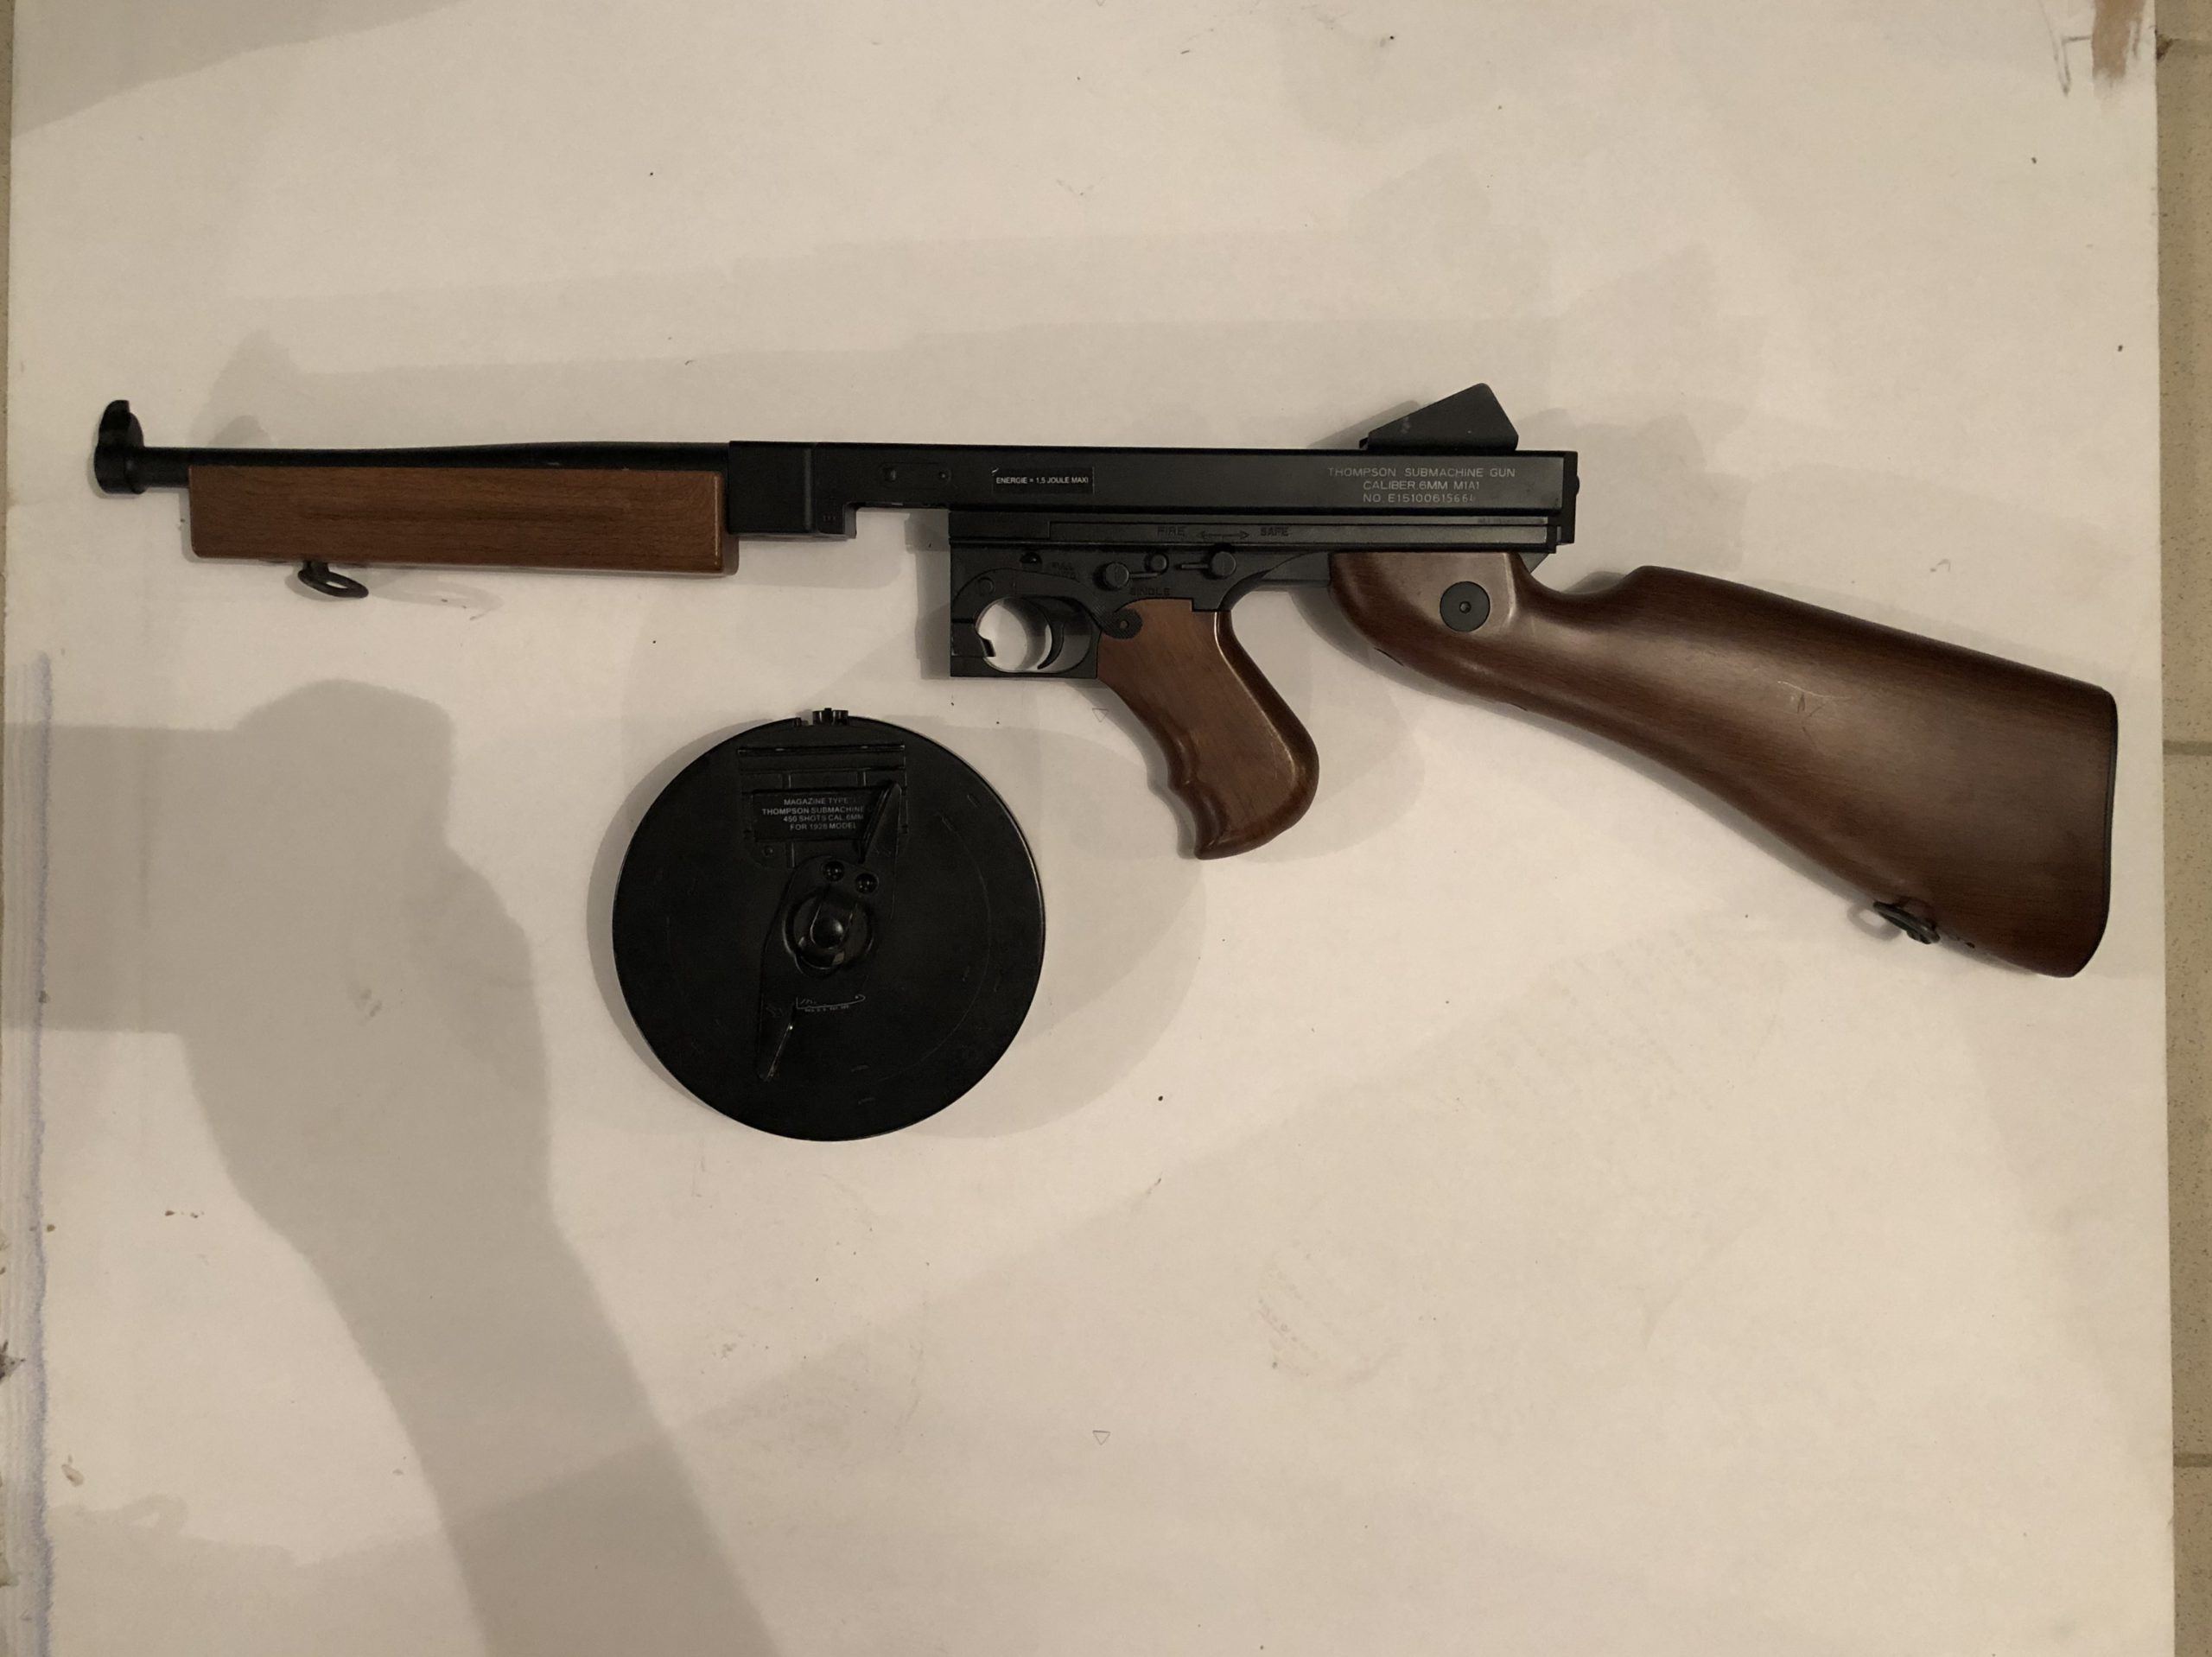 THOMPSON M1A1 FULL METAL KING ARMS